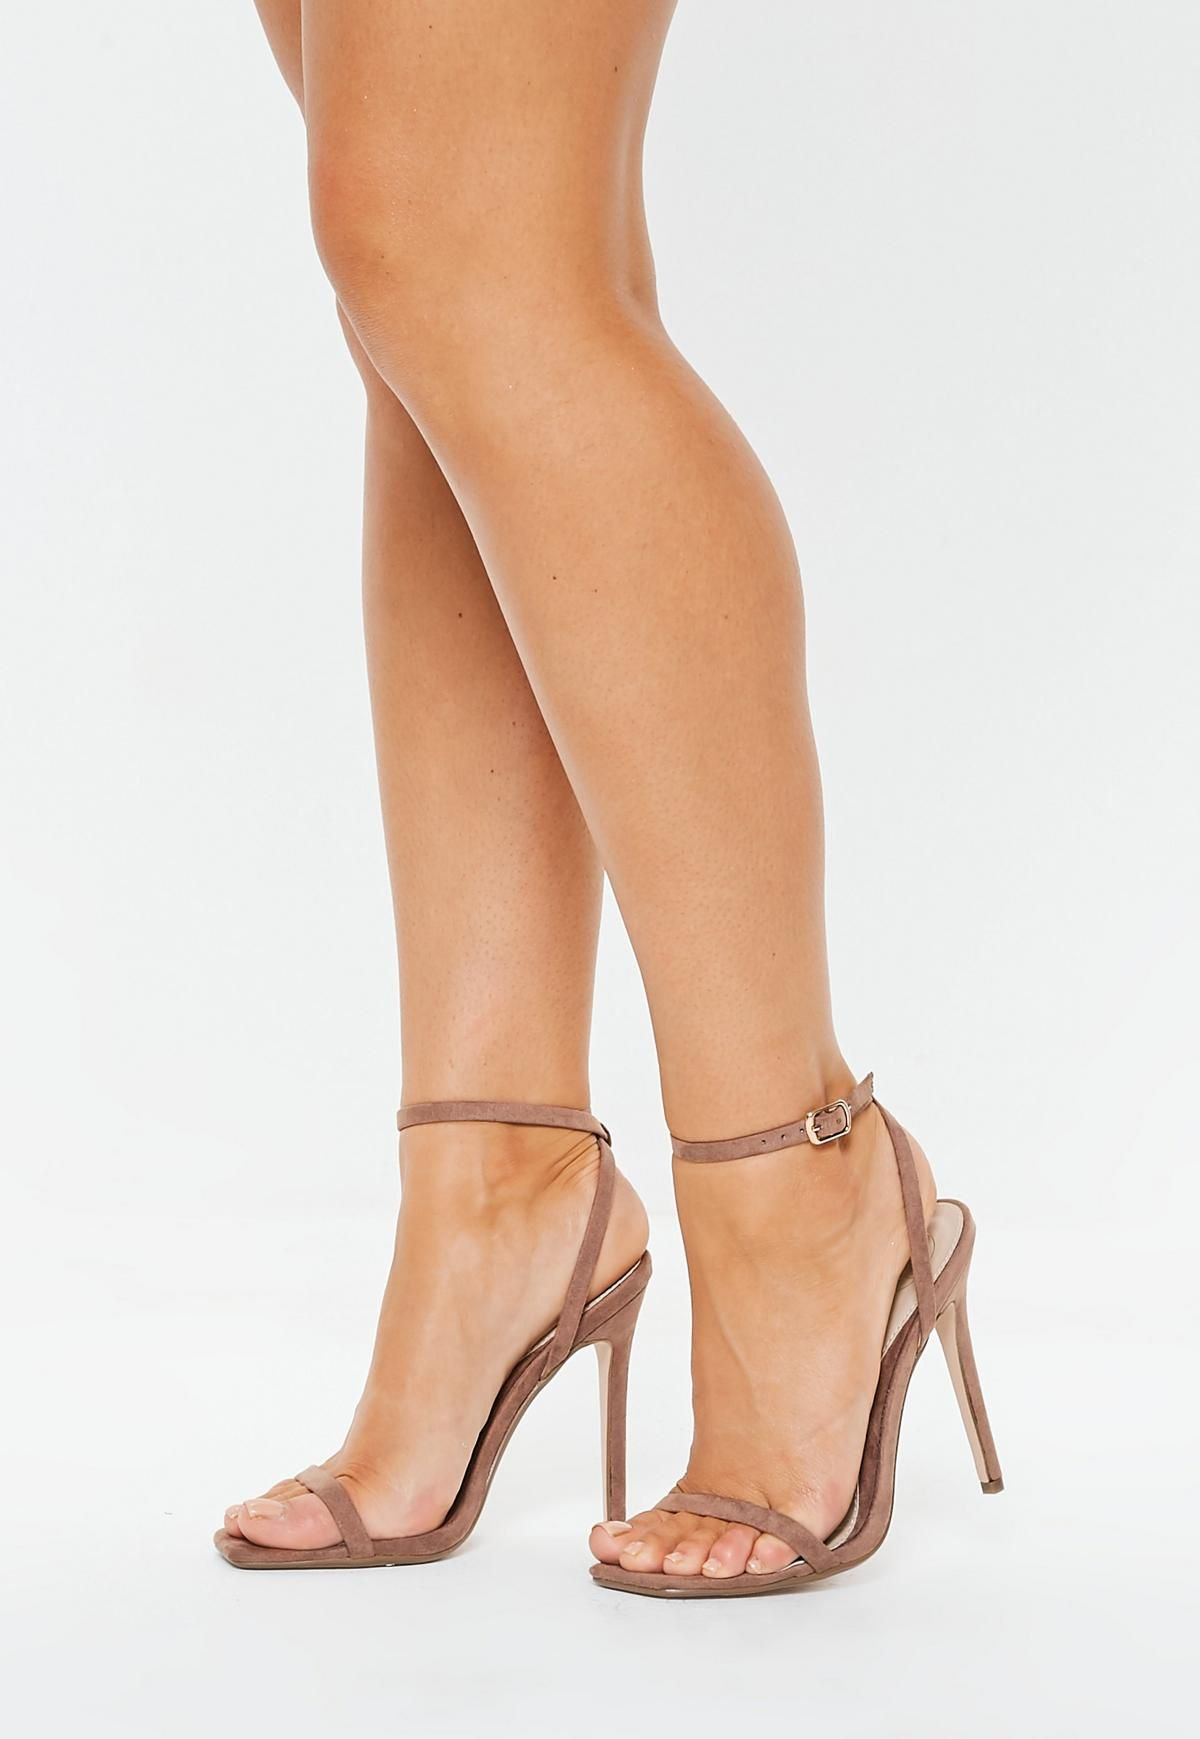 a6cc076d22 Missguided Taupe Barely There Heels in 2019 | S H O E S | Heels ...